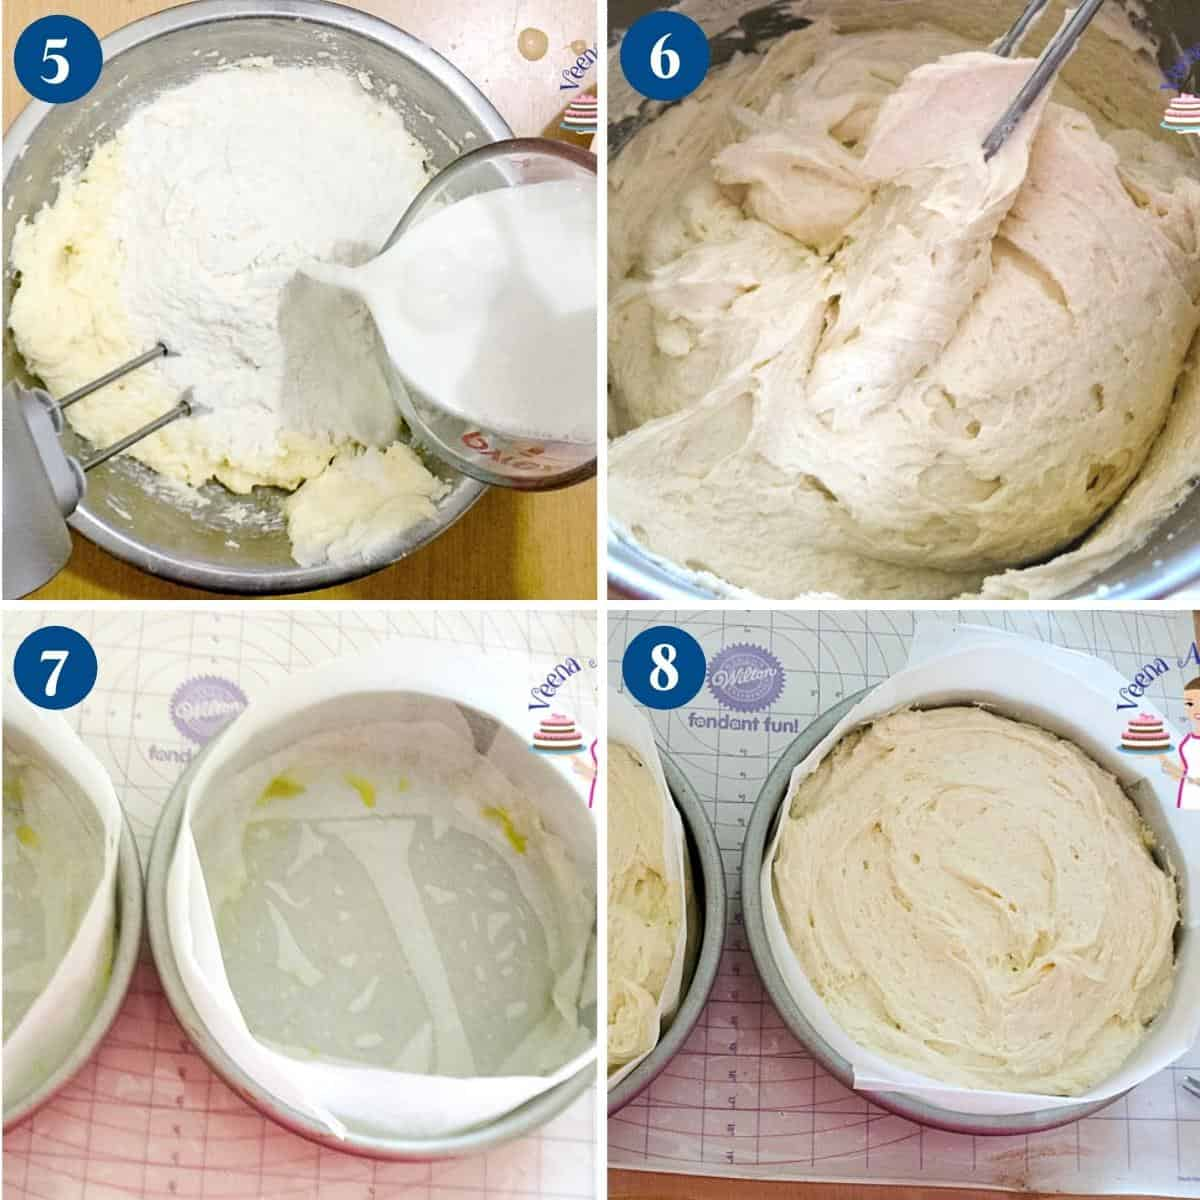 Progress pictures collage making the cake batter from scratch.